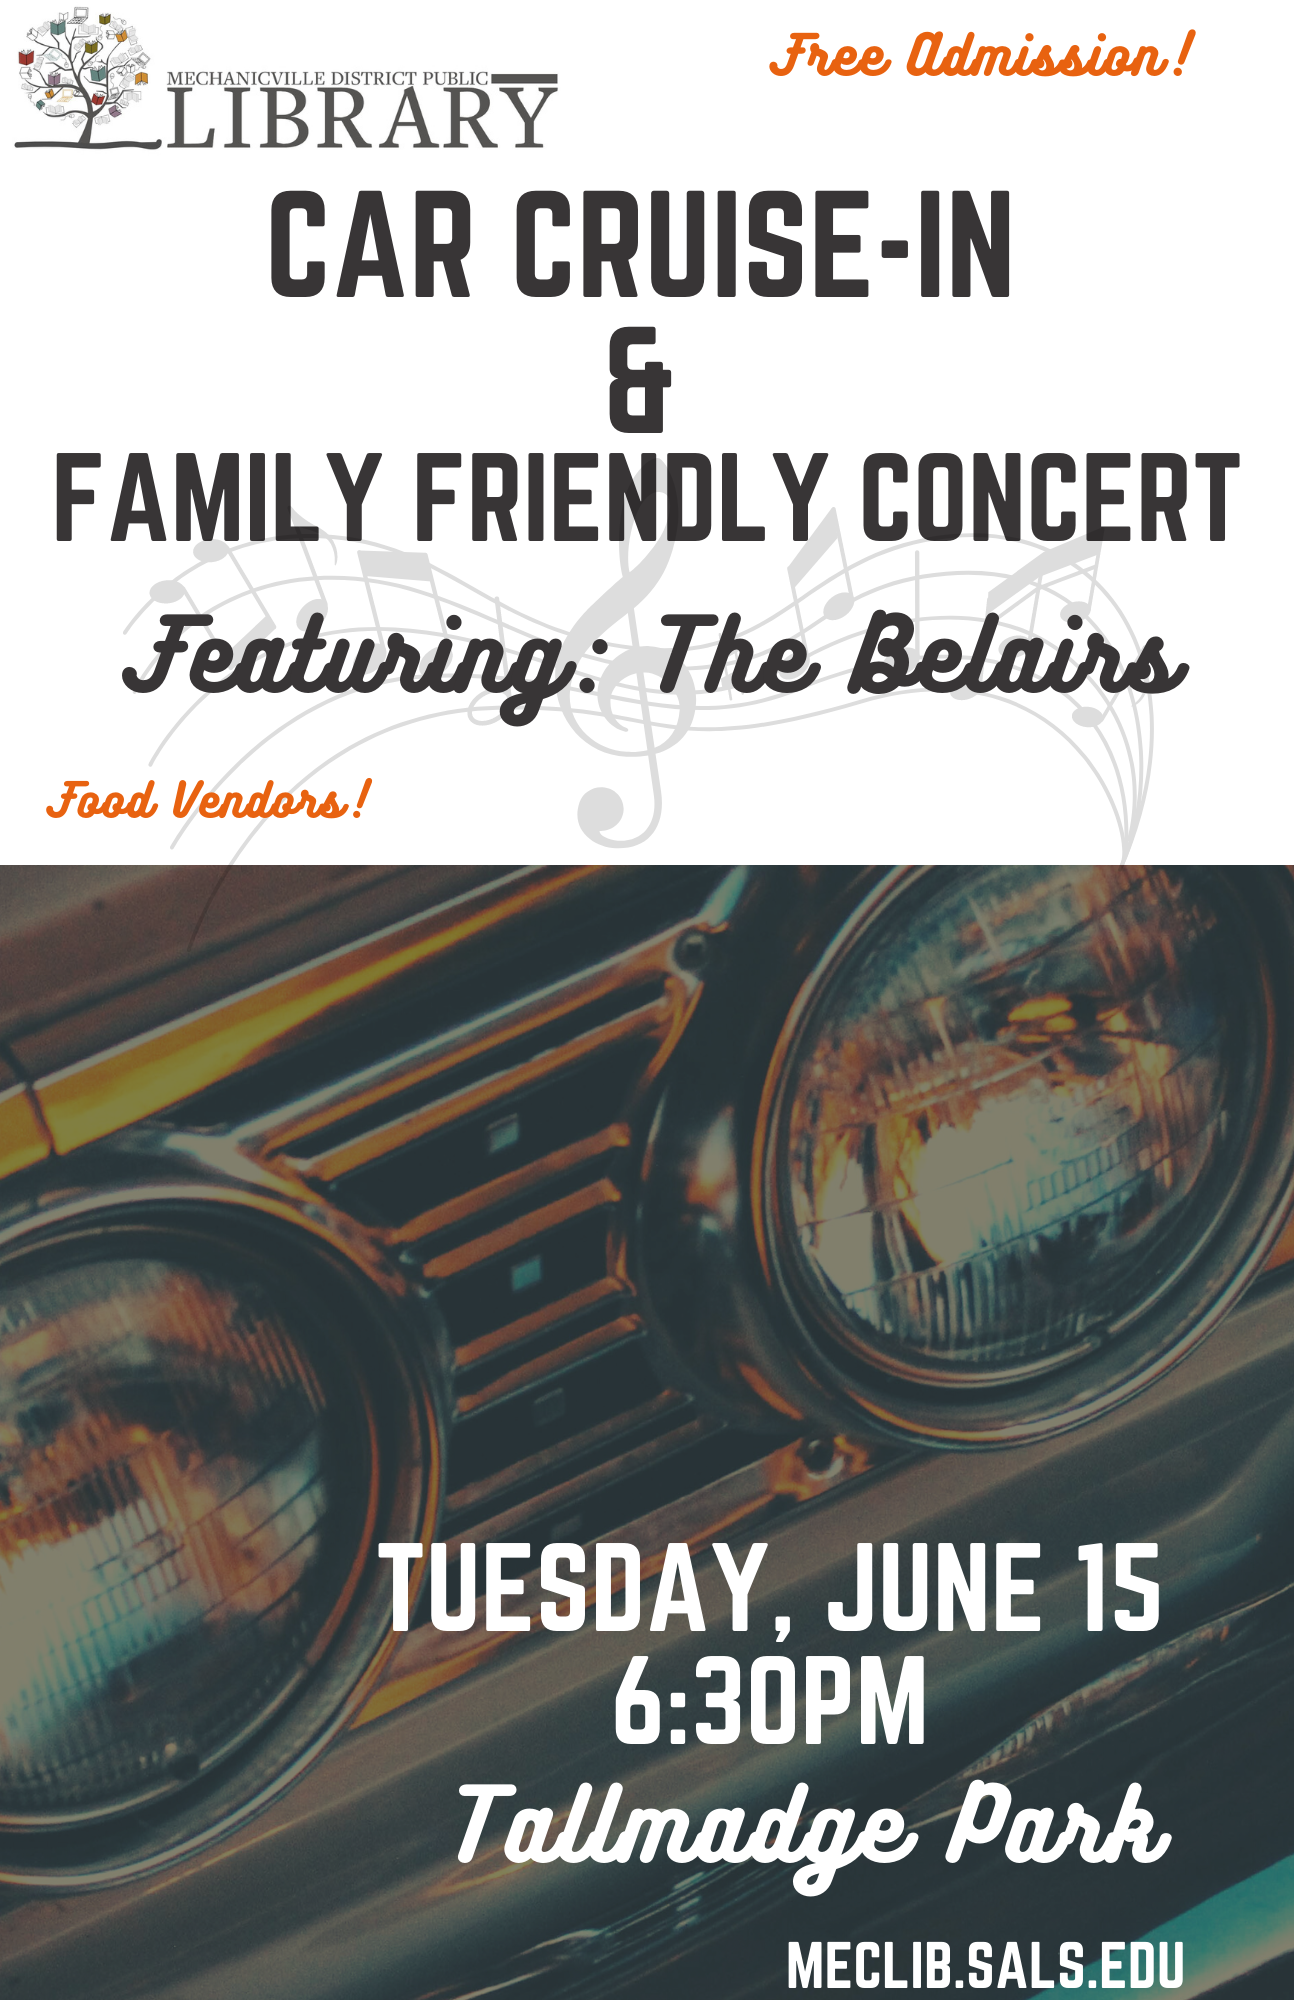 Car Cruise In & Family Concert @ Tallmadge Park | Mechanicville | New York | United States